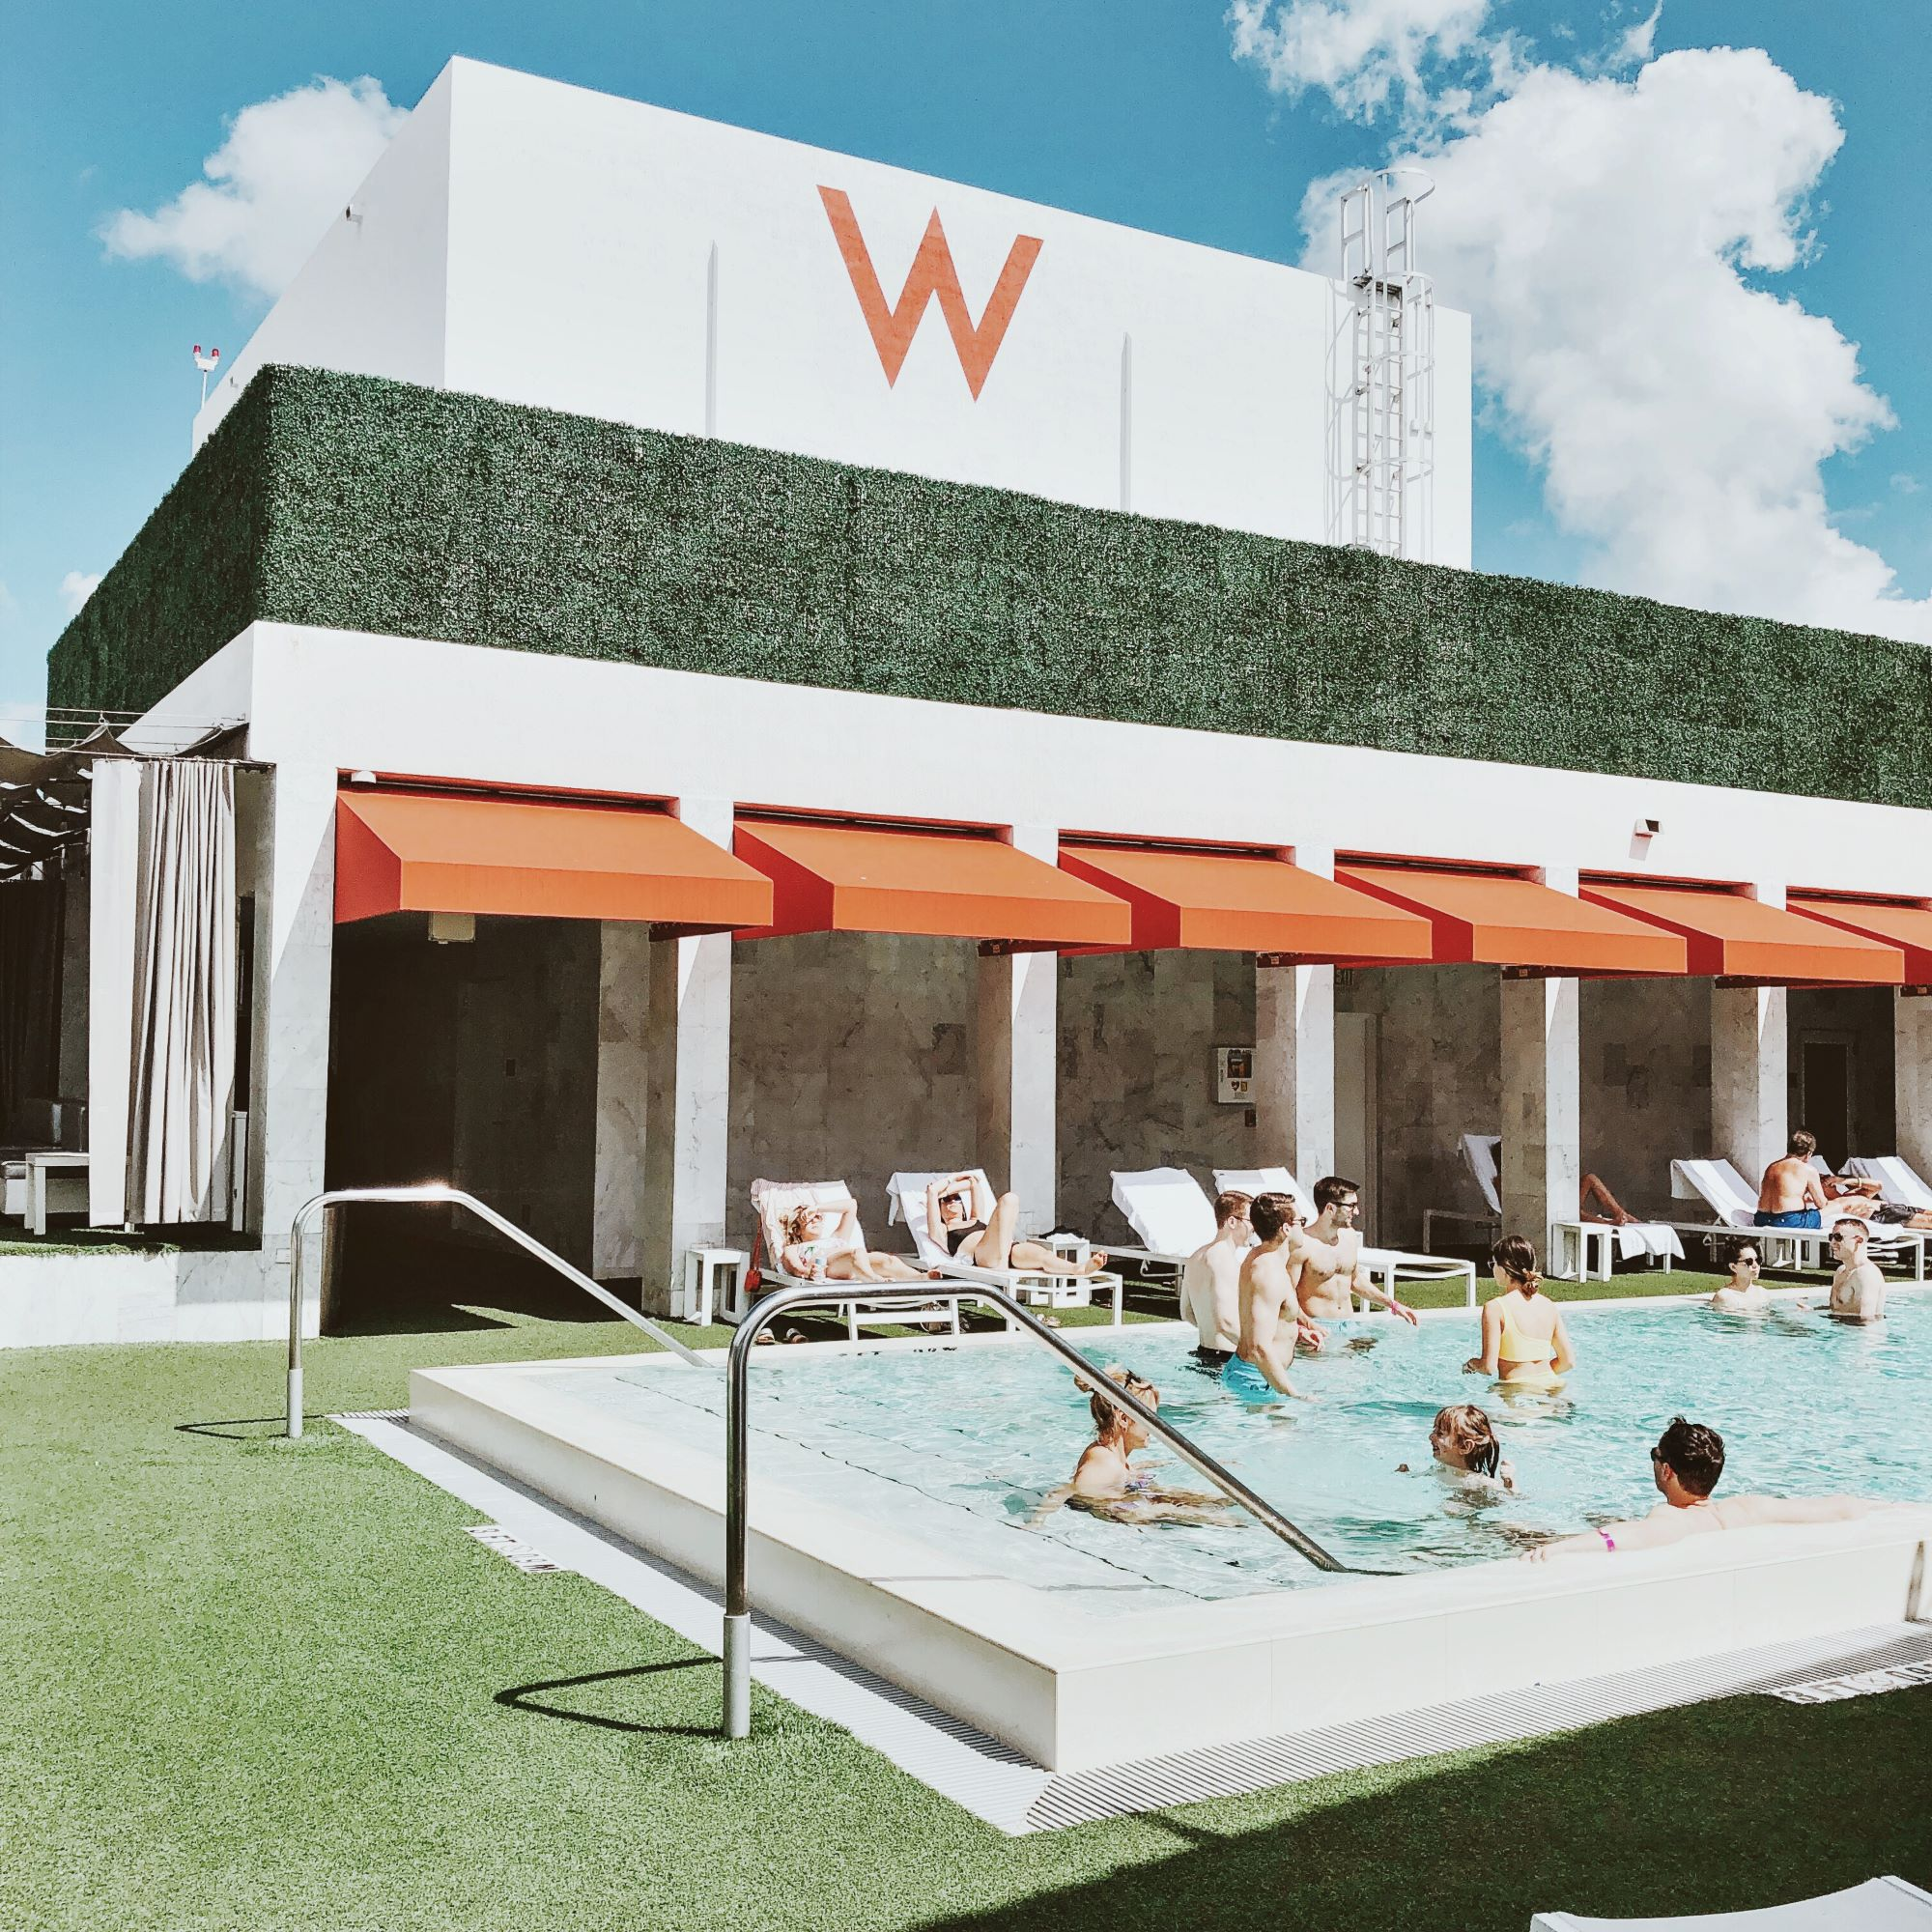 W Hotel Miami | Travel Diary